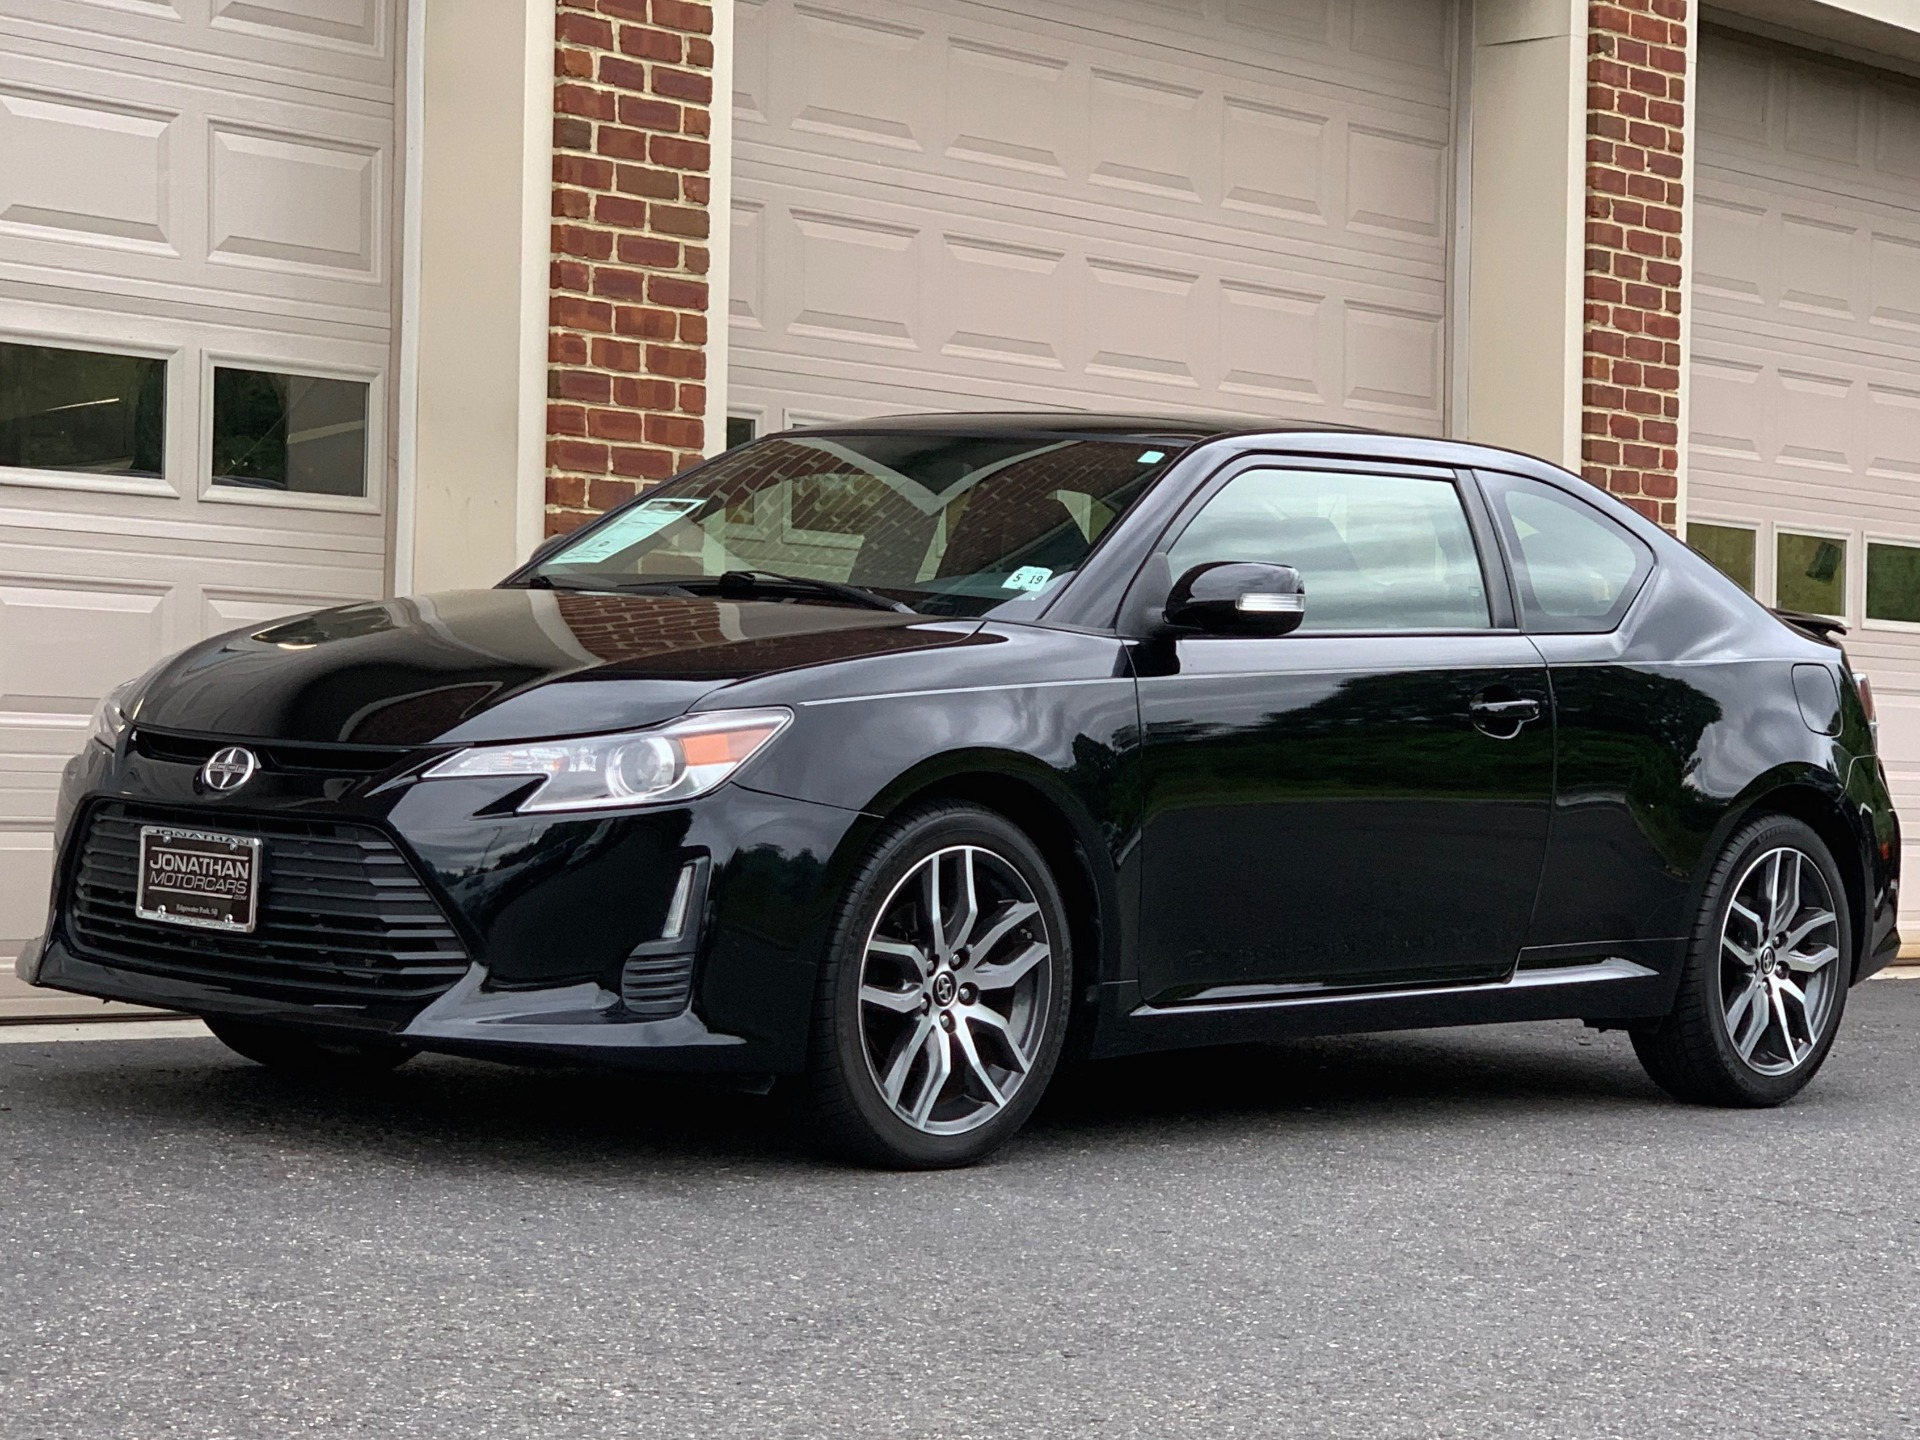 Used-2014-Scion-tC-Monogram